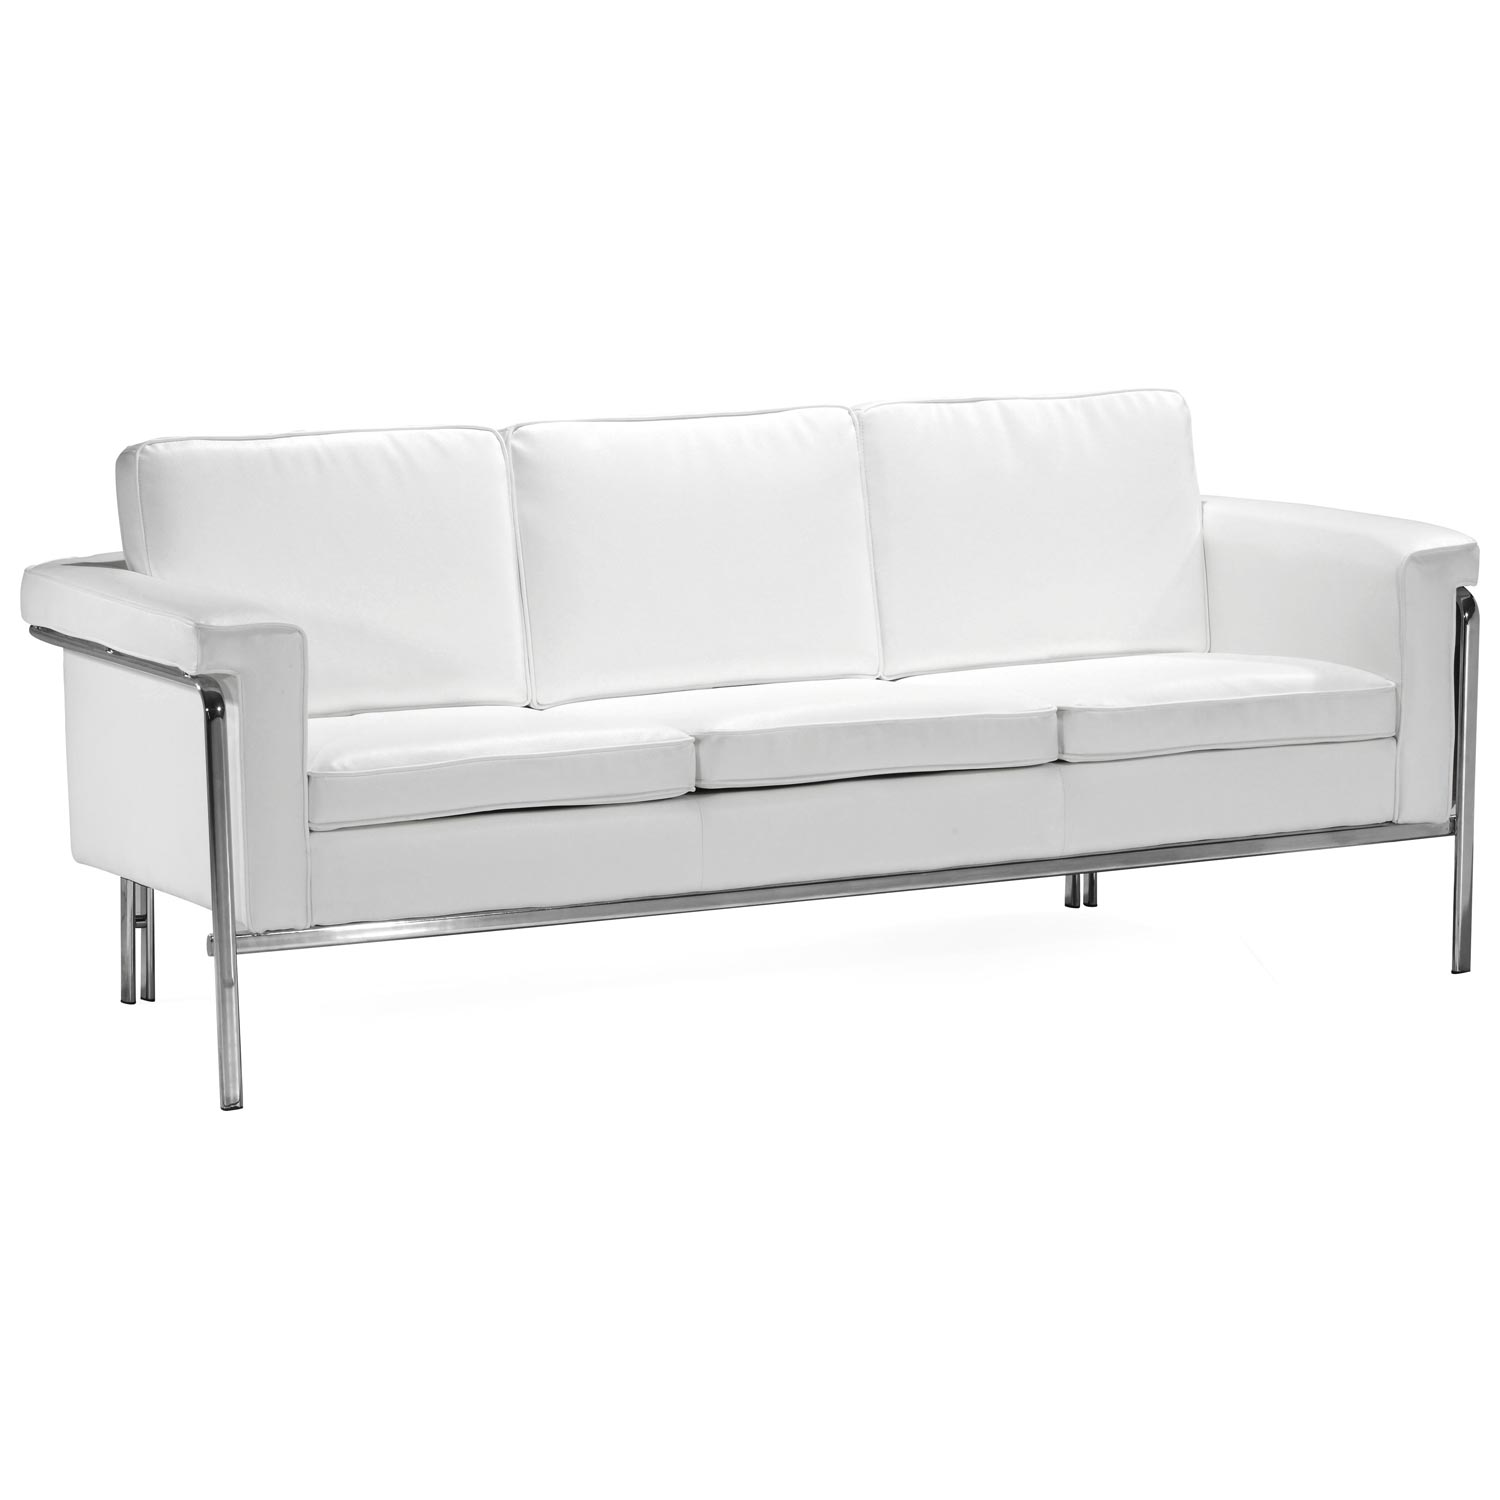 Singular Modern Sofa - Chrome Steel, White